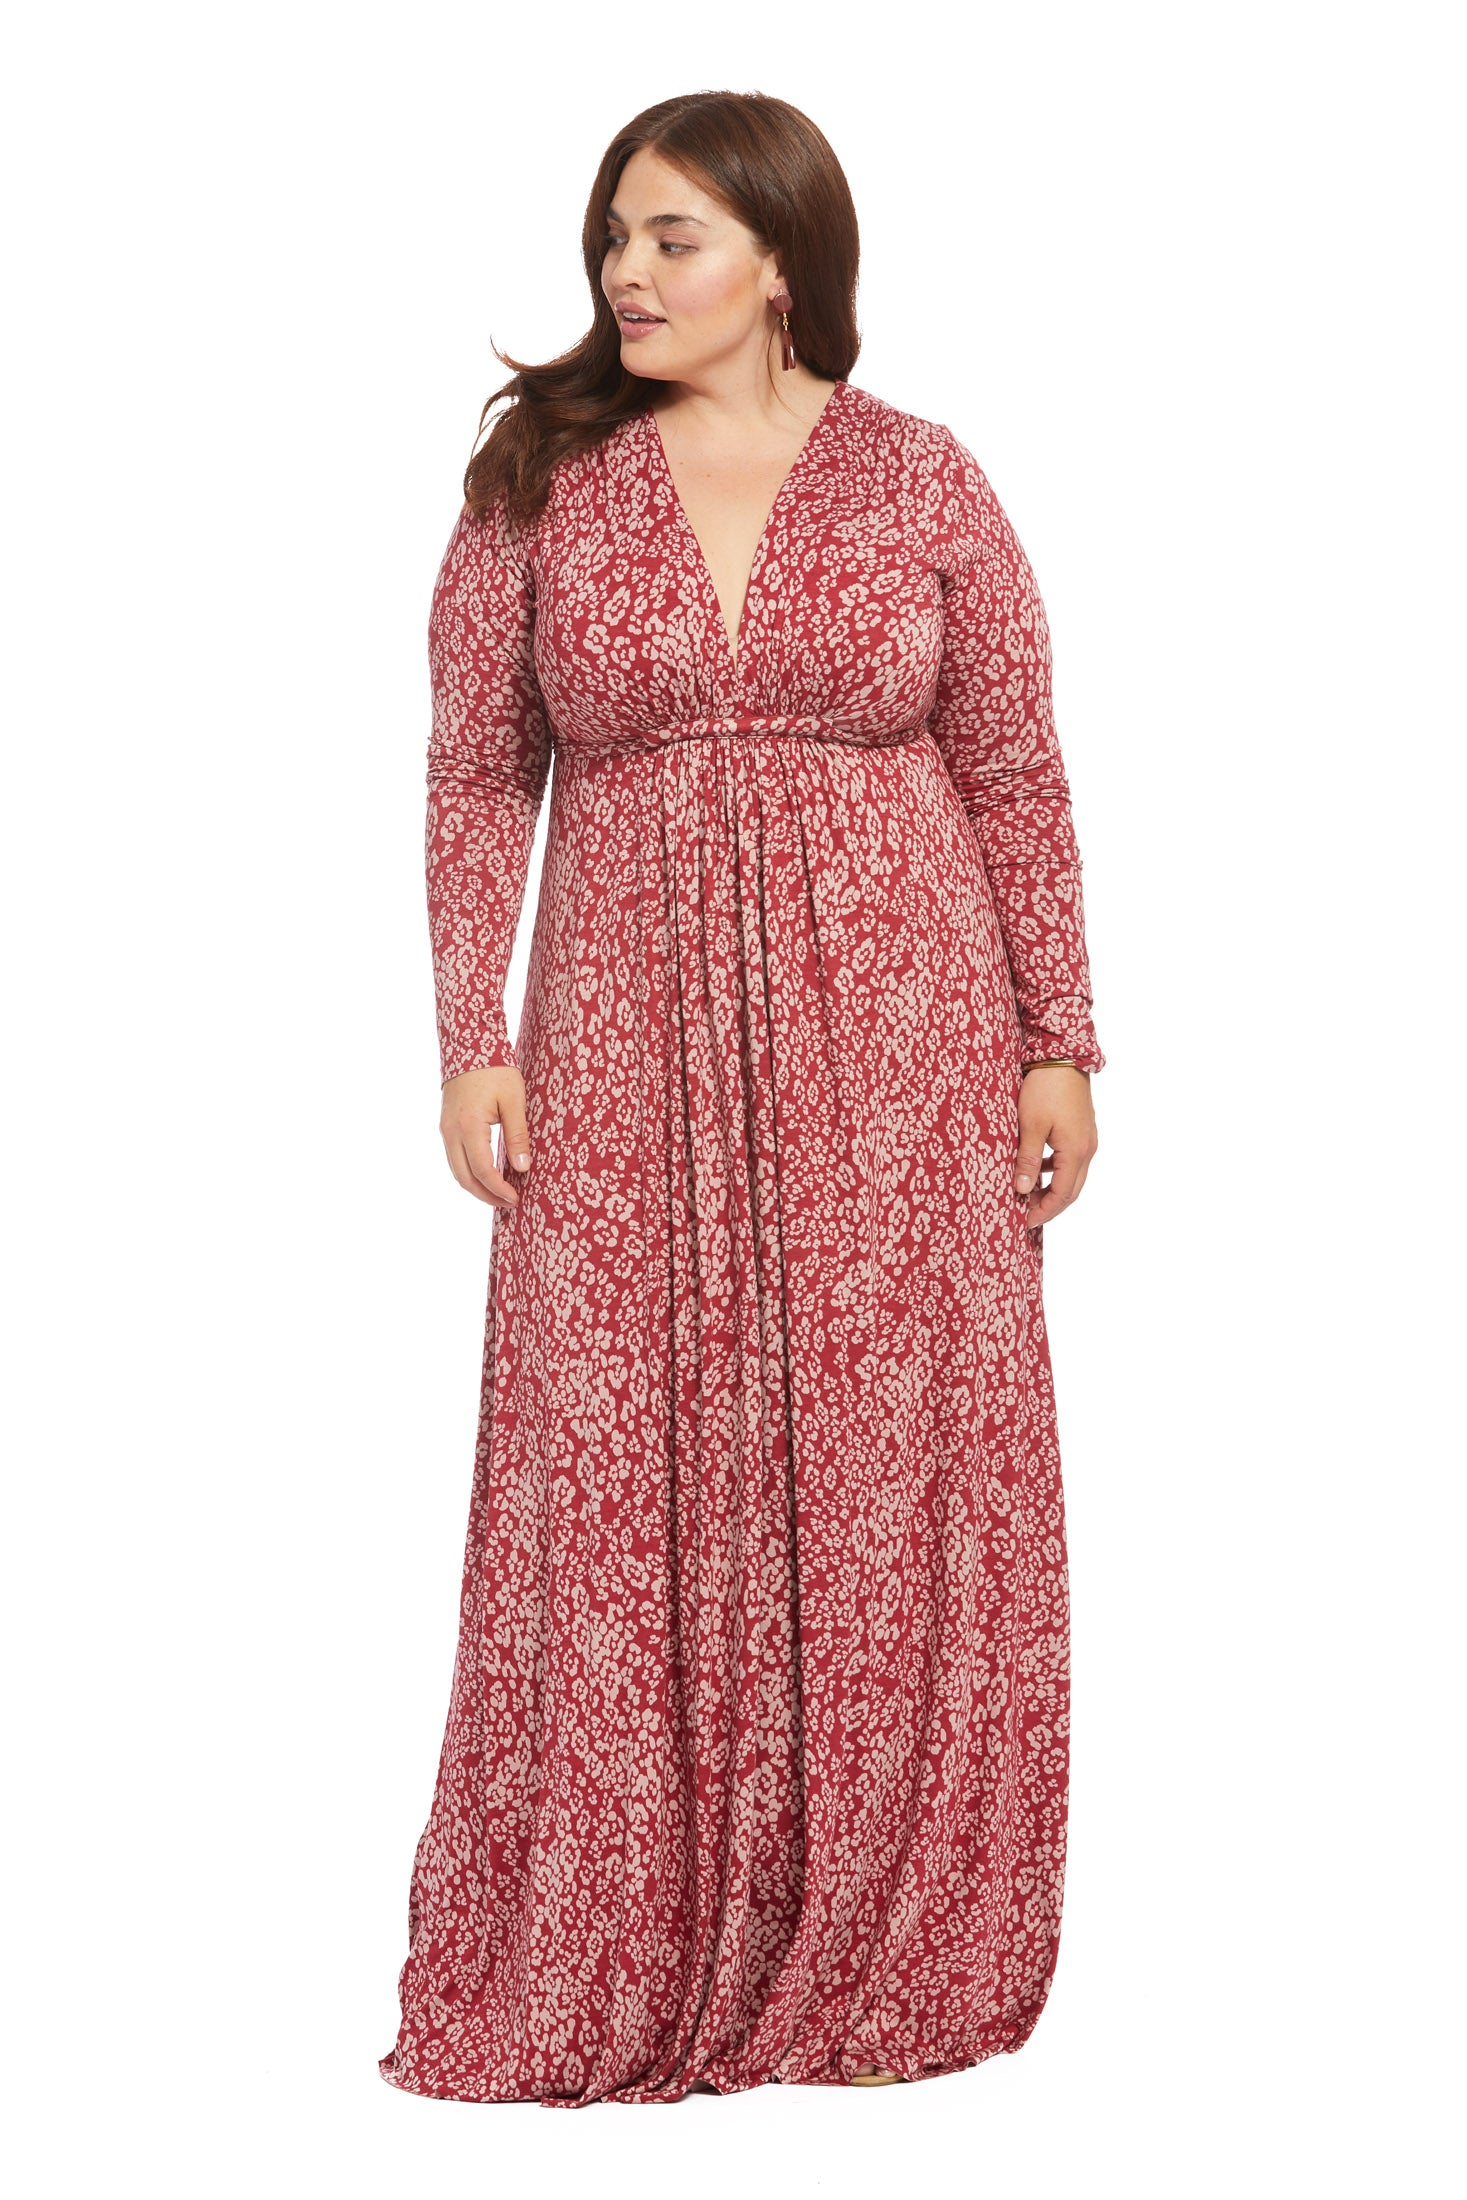 Long Sleeve Full Length Caftan - Mau, Plus Size